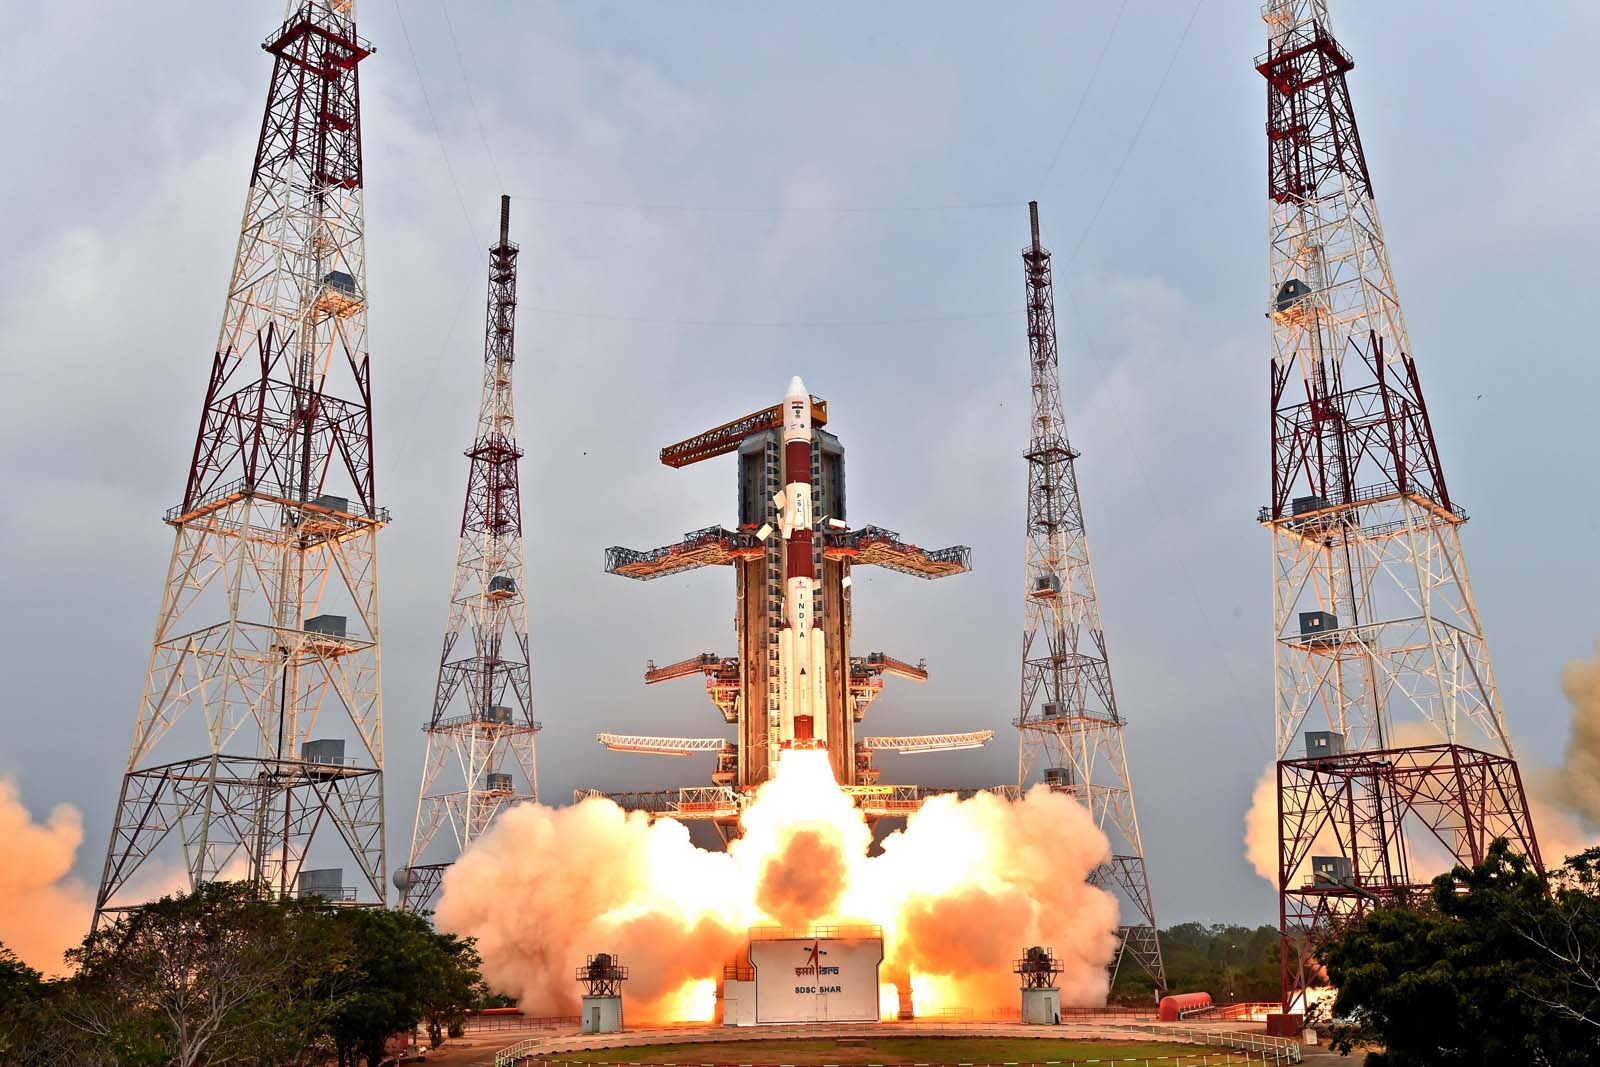 ISRO, Indian Space Research Organisation, Mangalyaan, Mars Orbiter Mission, Chandrayaan 2, Chandrayaan 1, PSLV XL, GSLV, NASA, European Space Agency, SpaceX Falcon 9, GODL license, National Data Sharing and Accessibility Policy, Wikimedia Commons, Flickr Commons, Minnie Vaid, Ekta Kapoor, Mission Mangal,